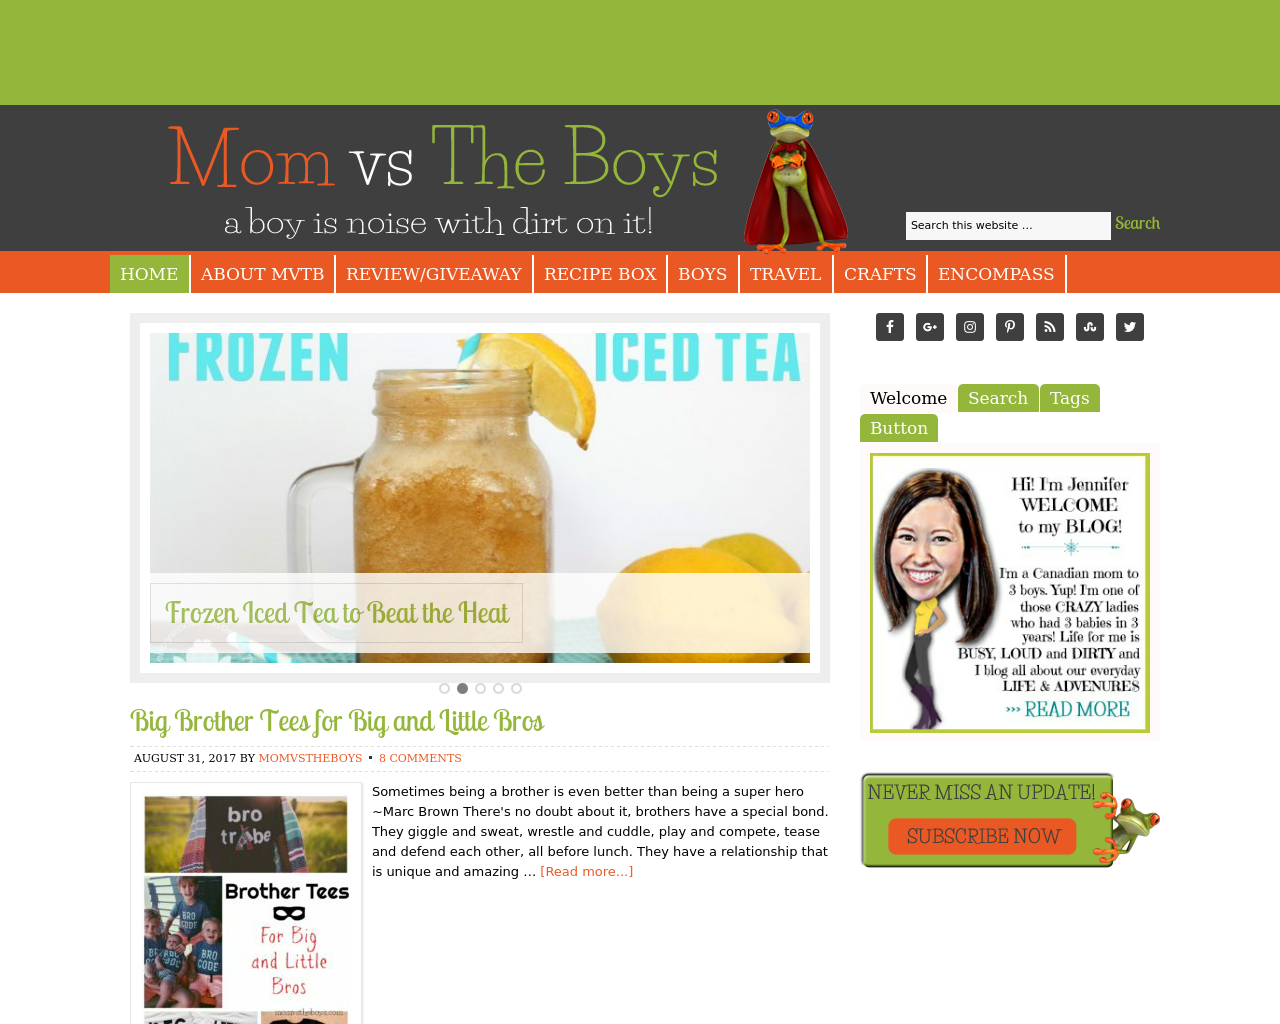 Mom-Vs.-The-Boys-Advertising-Reviews-Pricing